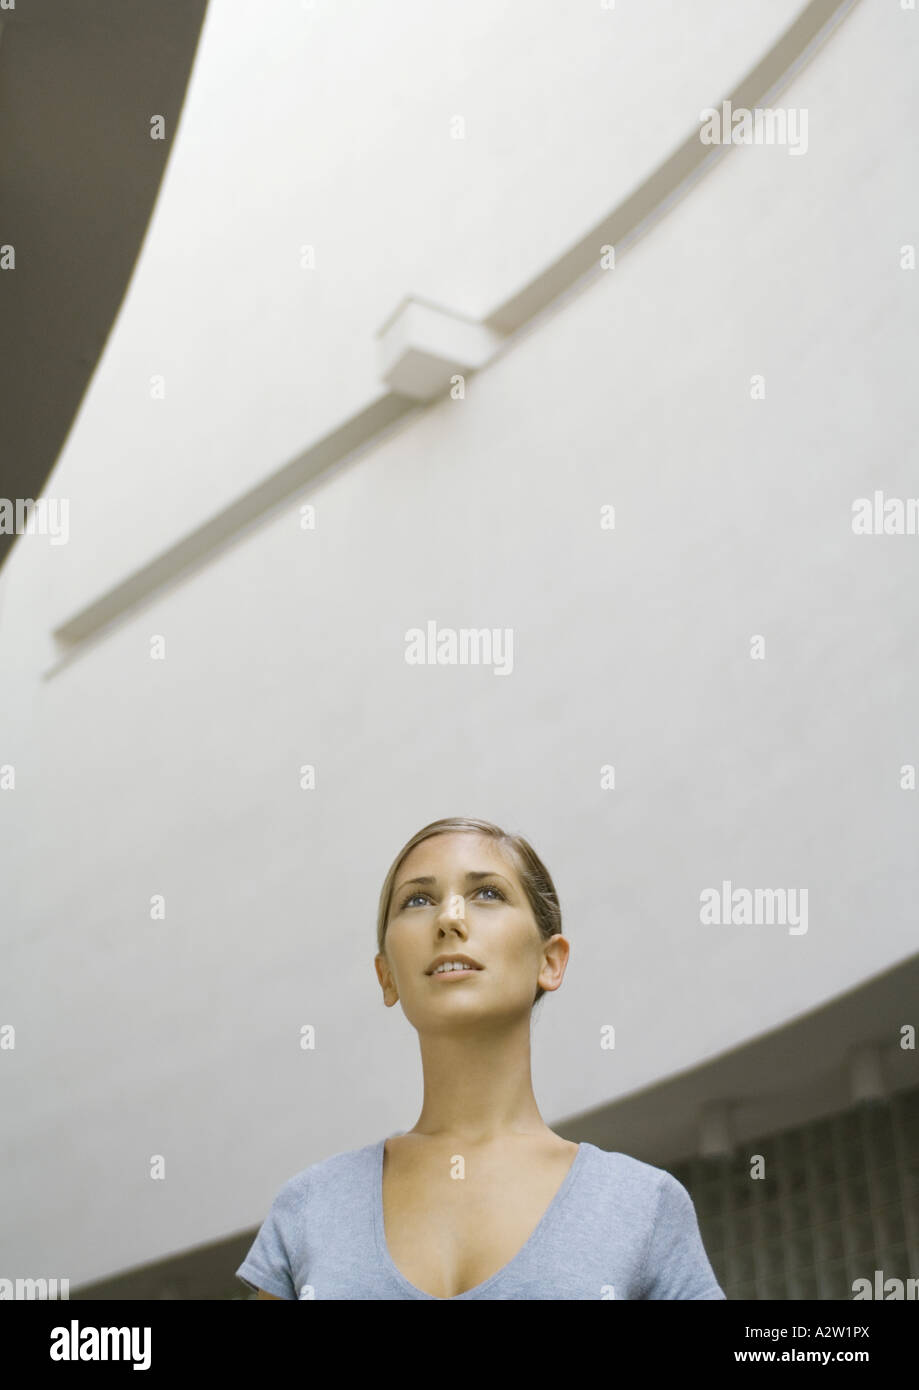 Woman, head and shoulders, low angle view Stock Photo